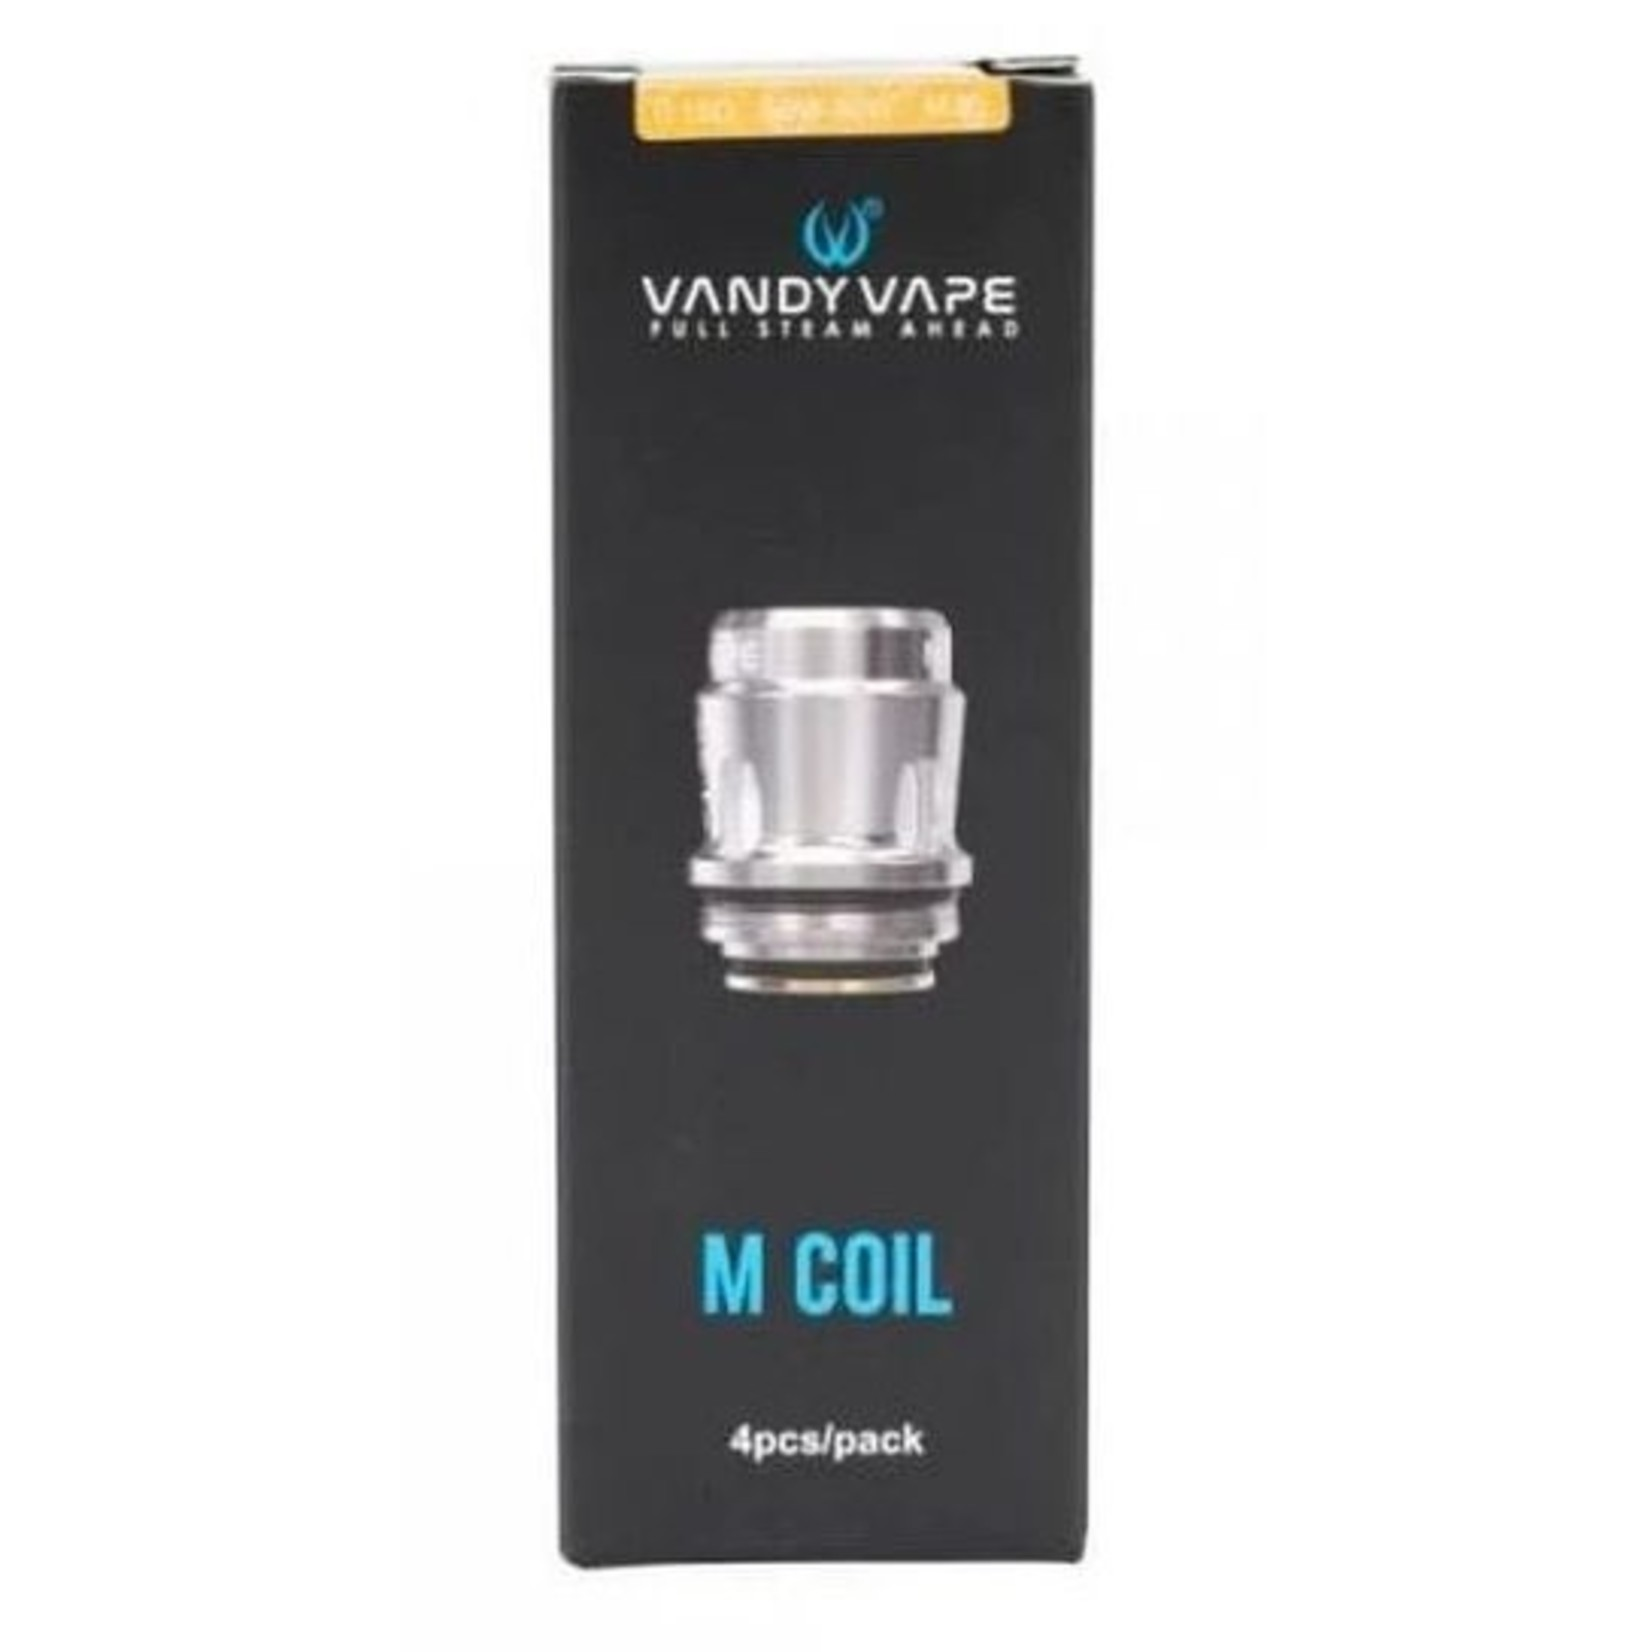 VandyVape Swell Coil